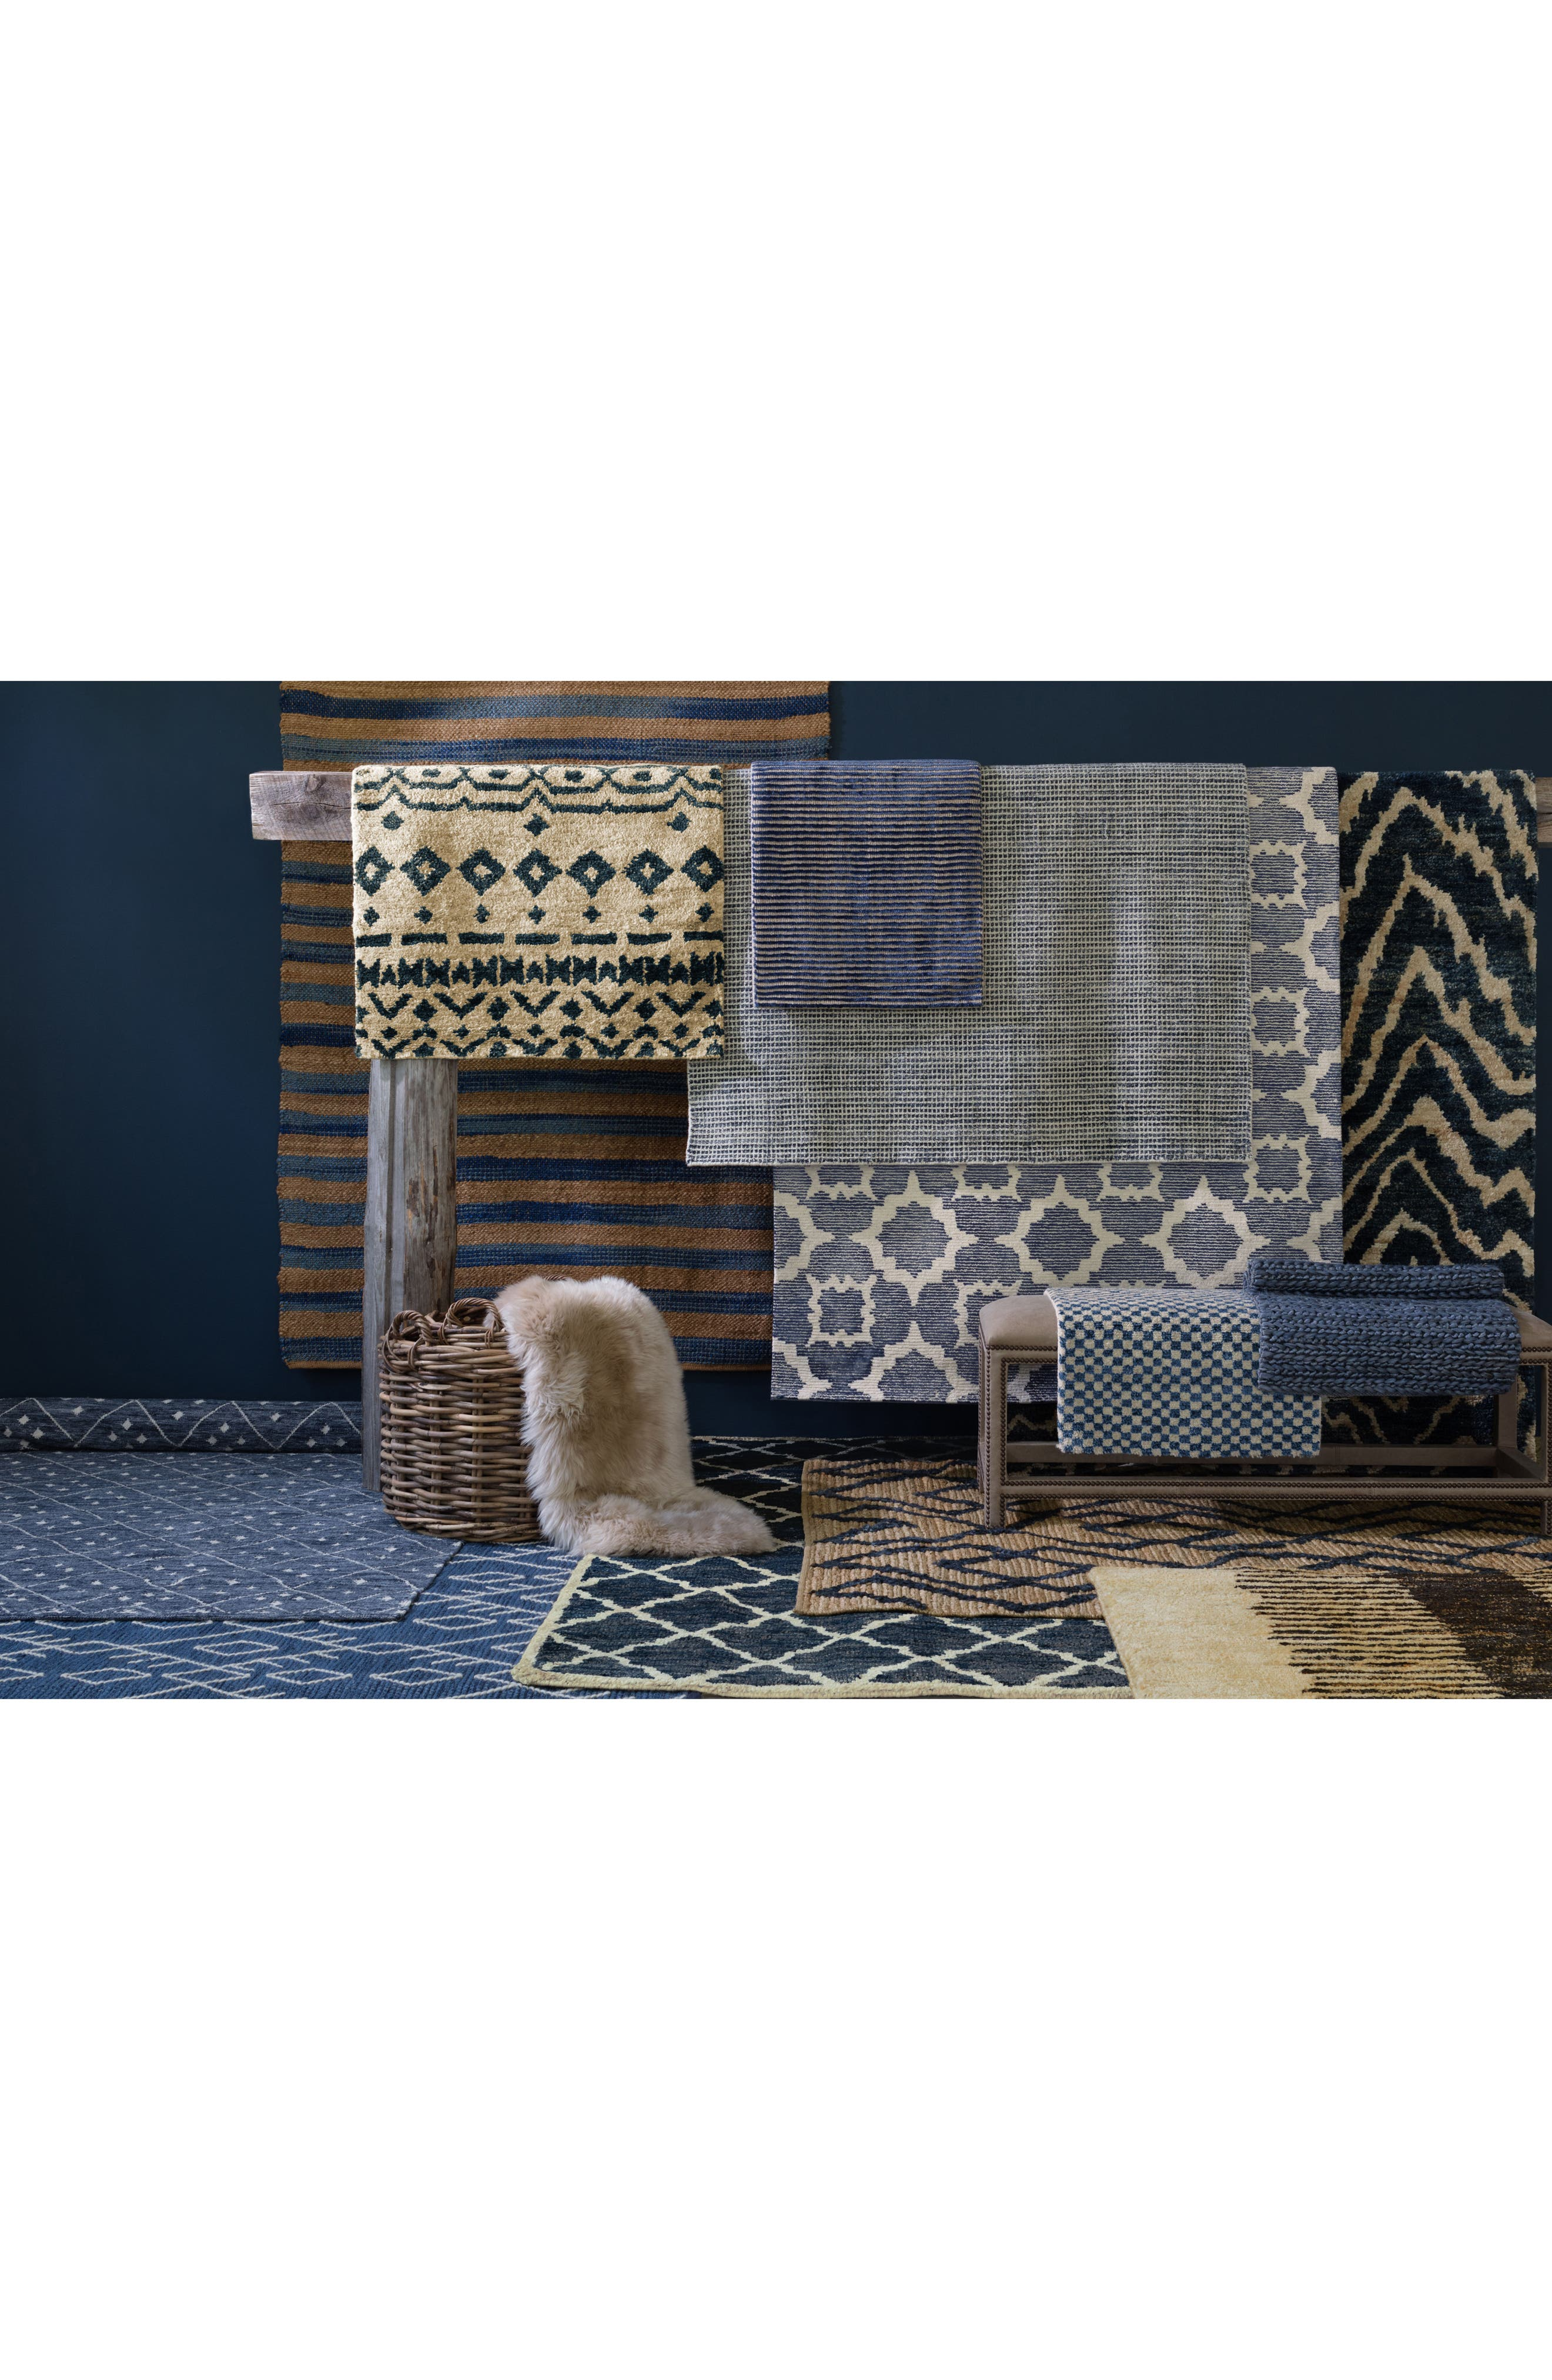 China Hand Knotted Wool Blend Rug,                             Alternate thumbnail 2, color,                             Blue